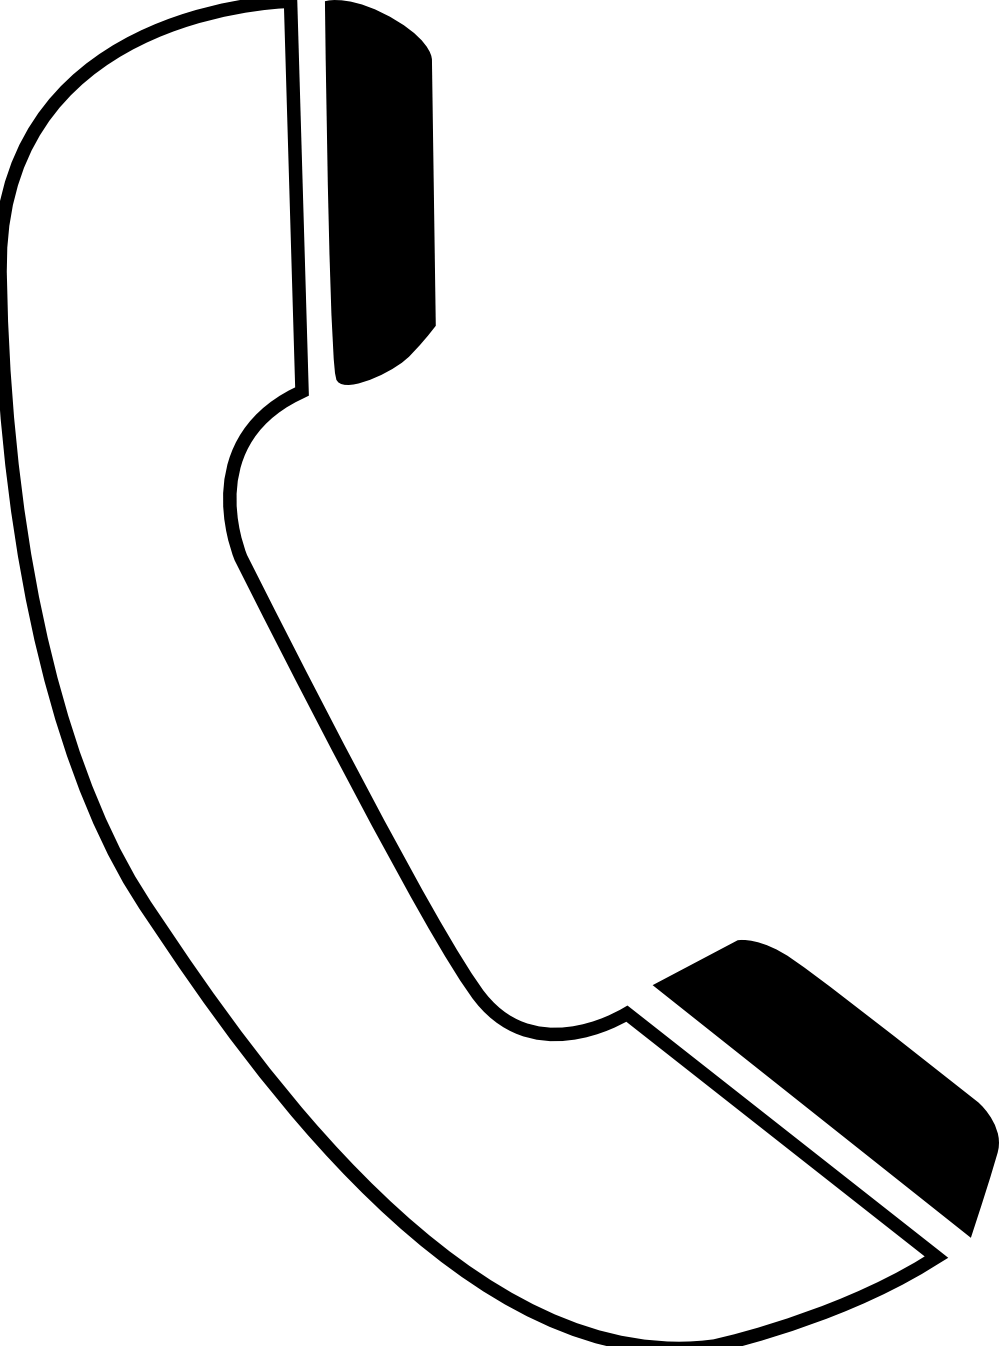 Telephone clipart black and white, Telephone black and